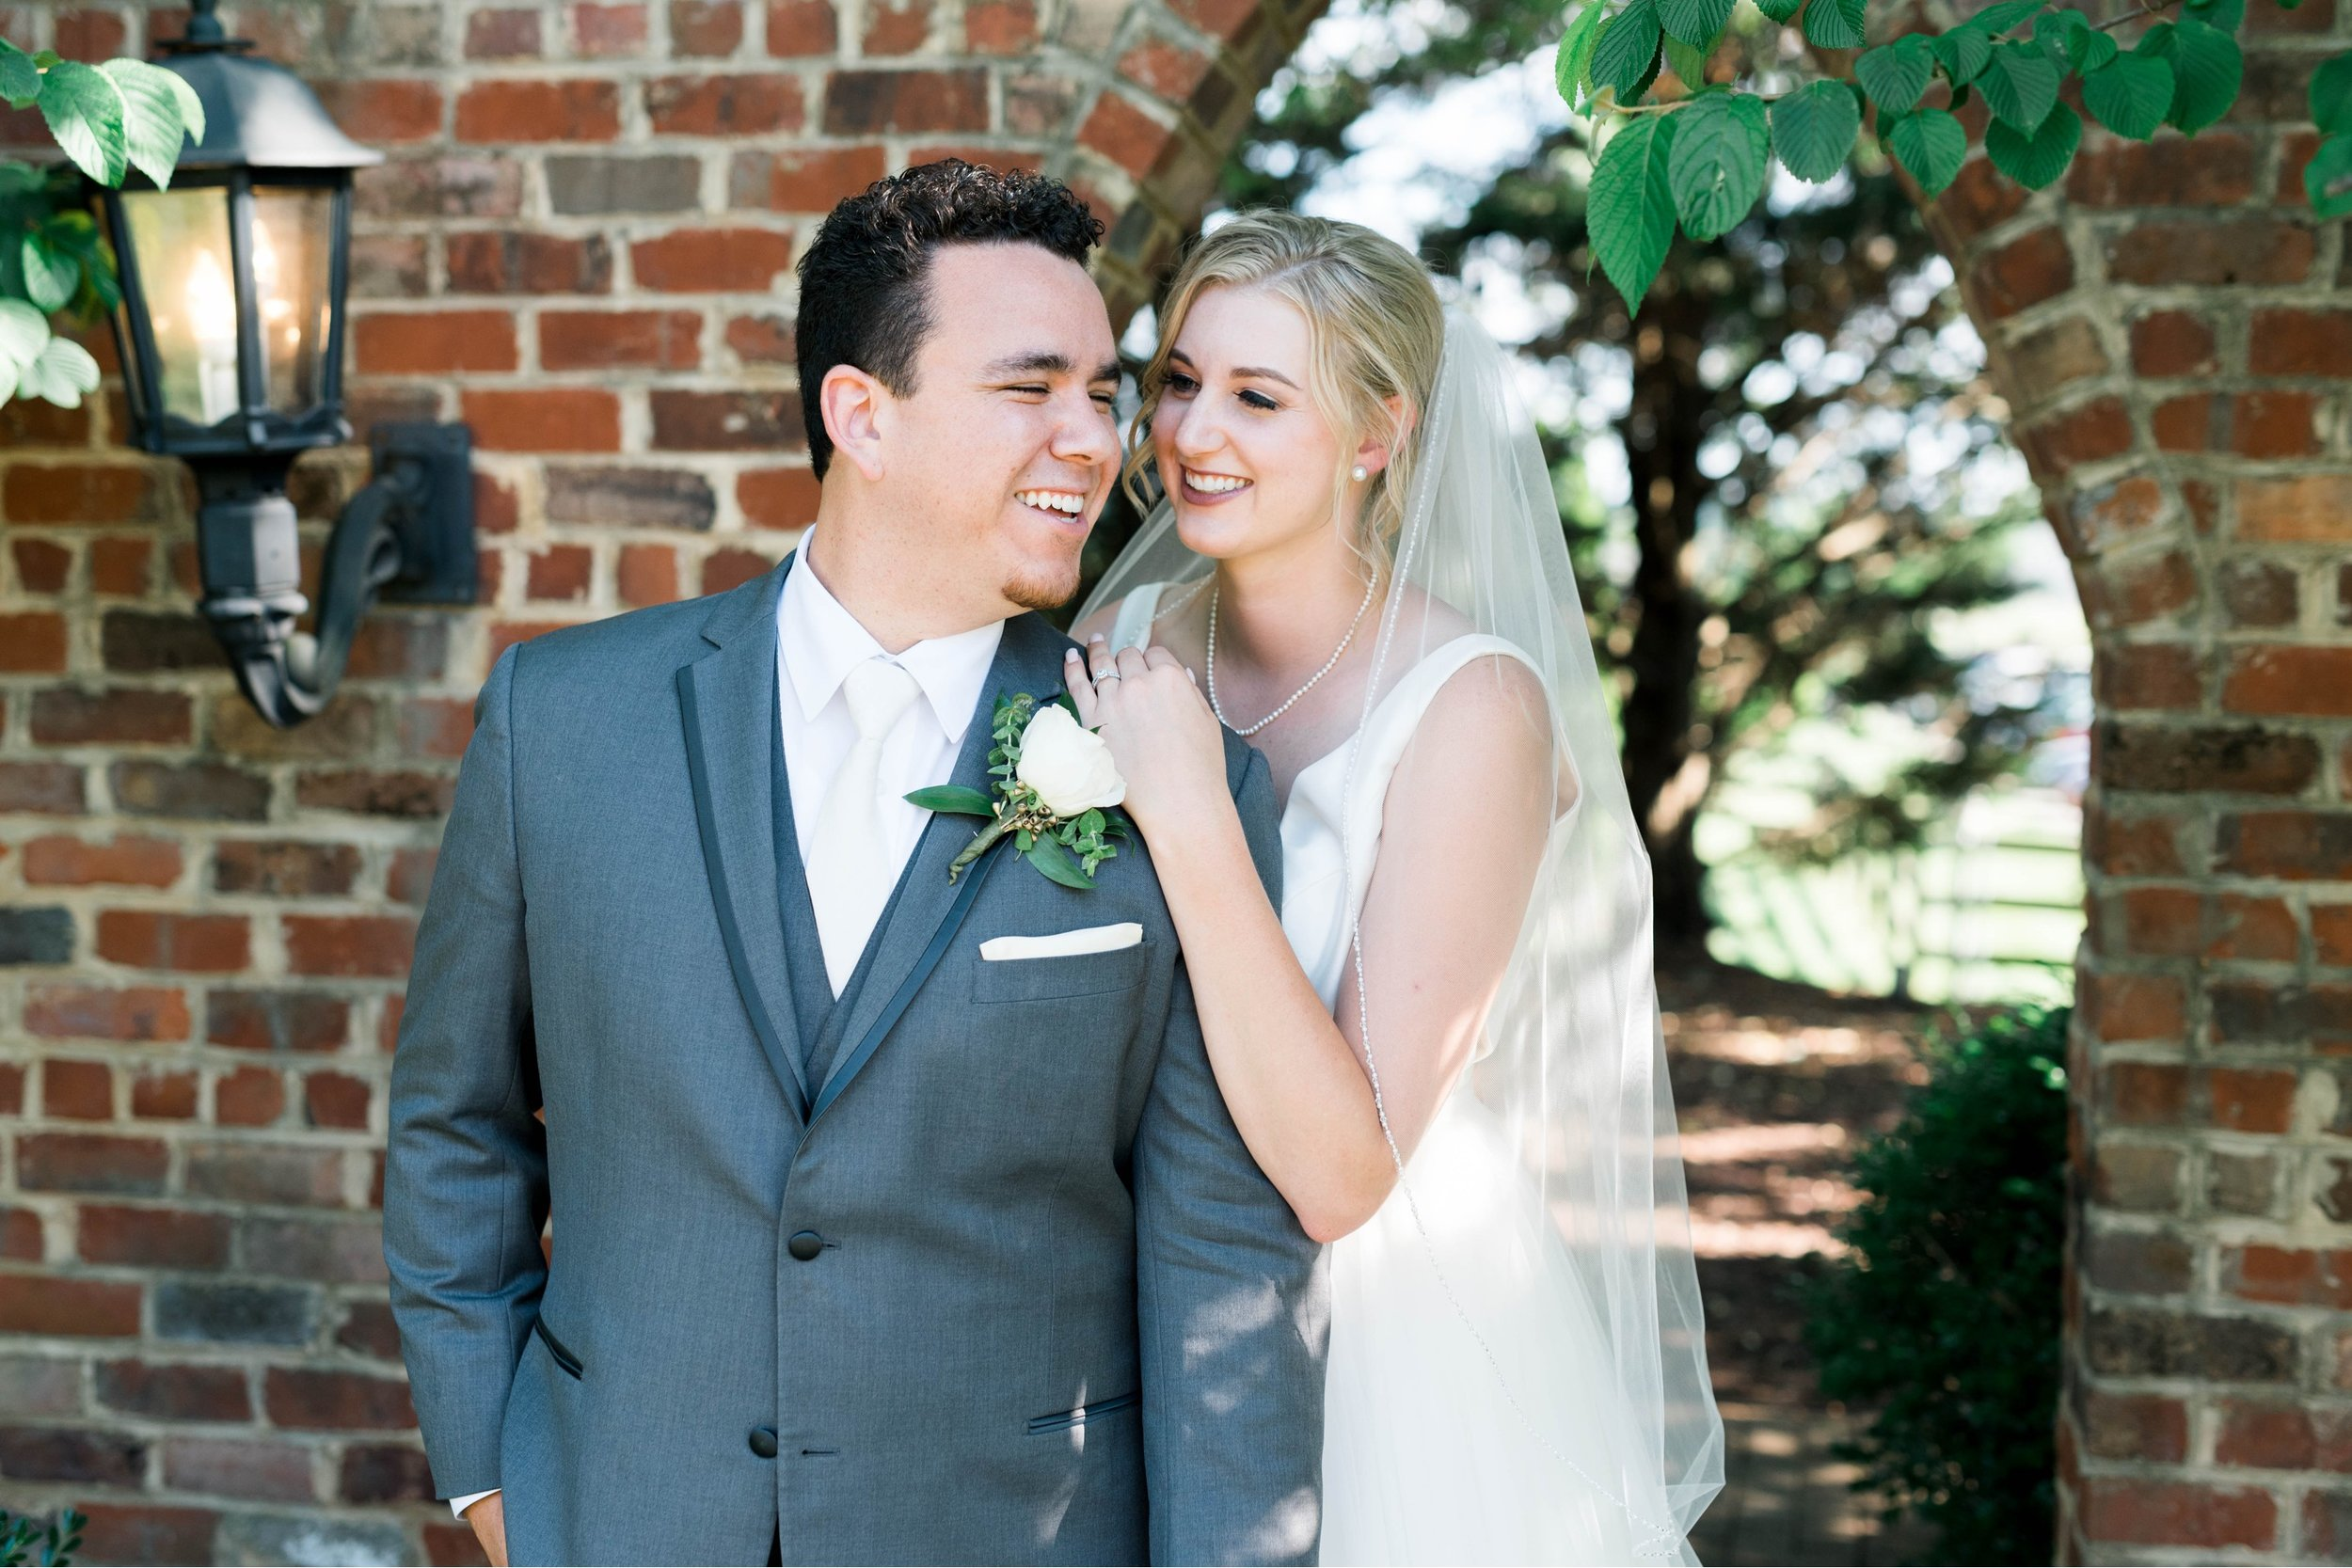 westmanorestate_entwinedevents_lynchburgweddingphotographer_Virginiaweddingphotographer_kateyam 42.jpg